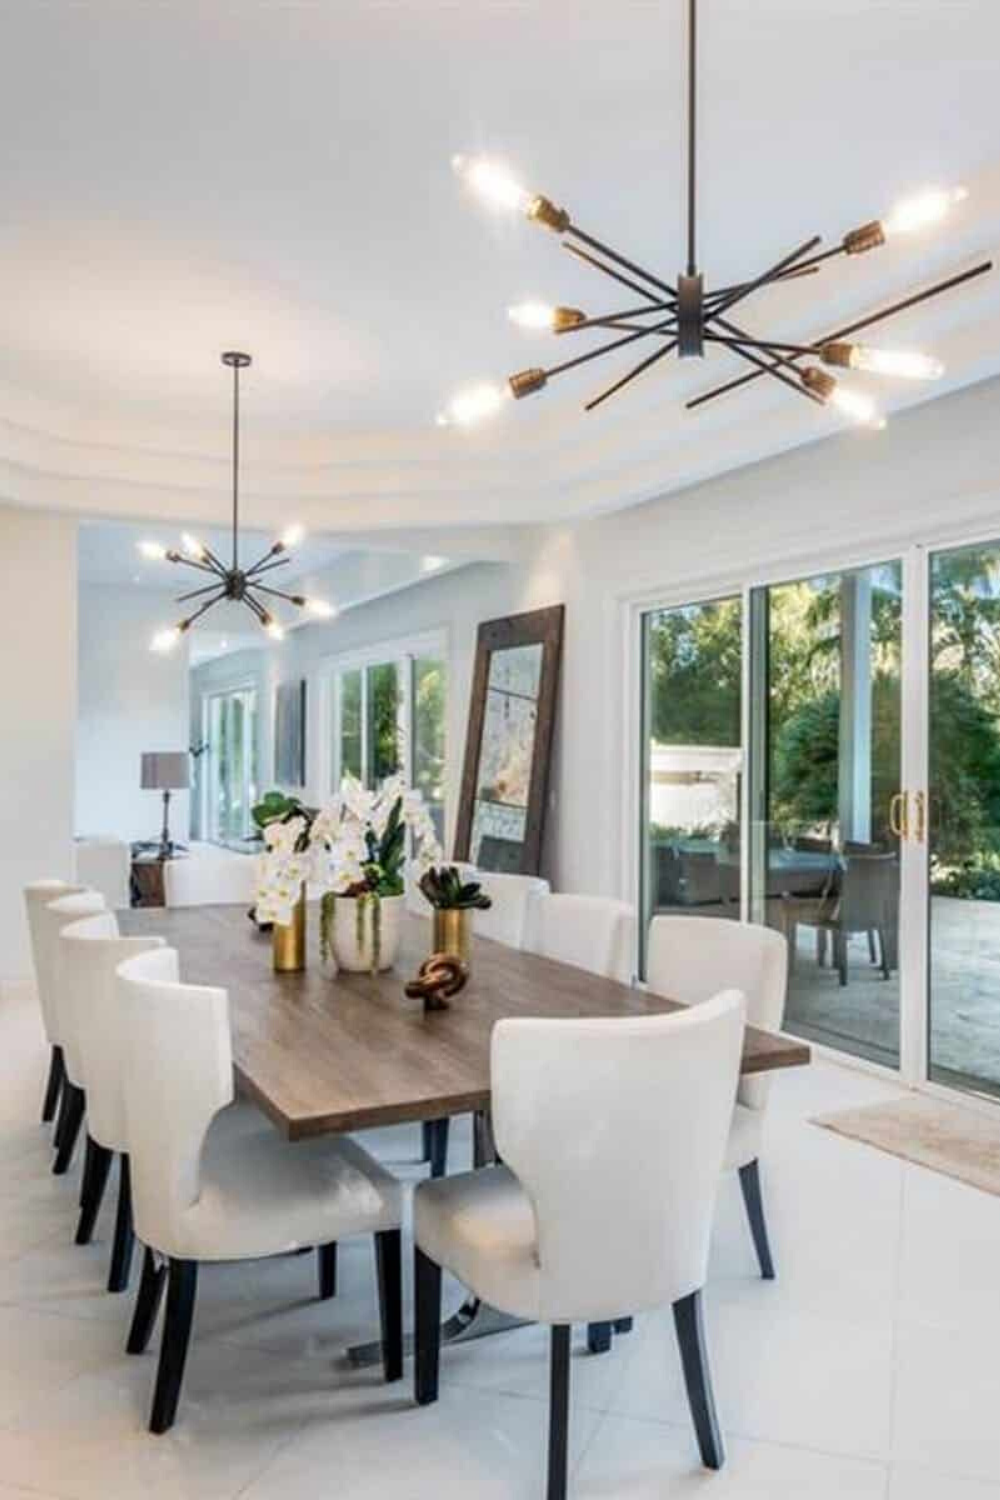 Photo of Glamorous Dining Room Design Inside a Tropical Paradise Mansion